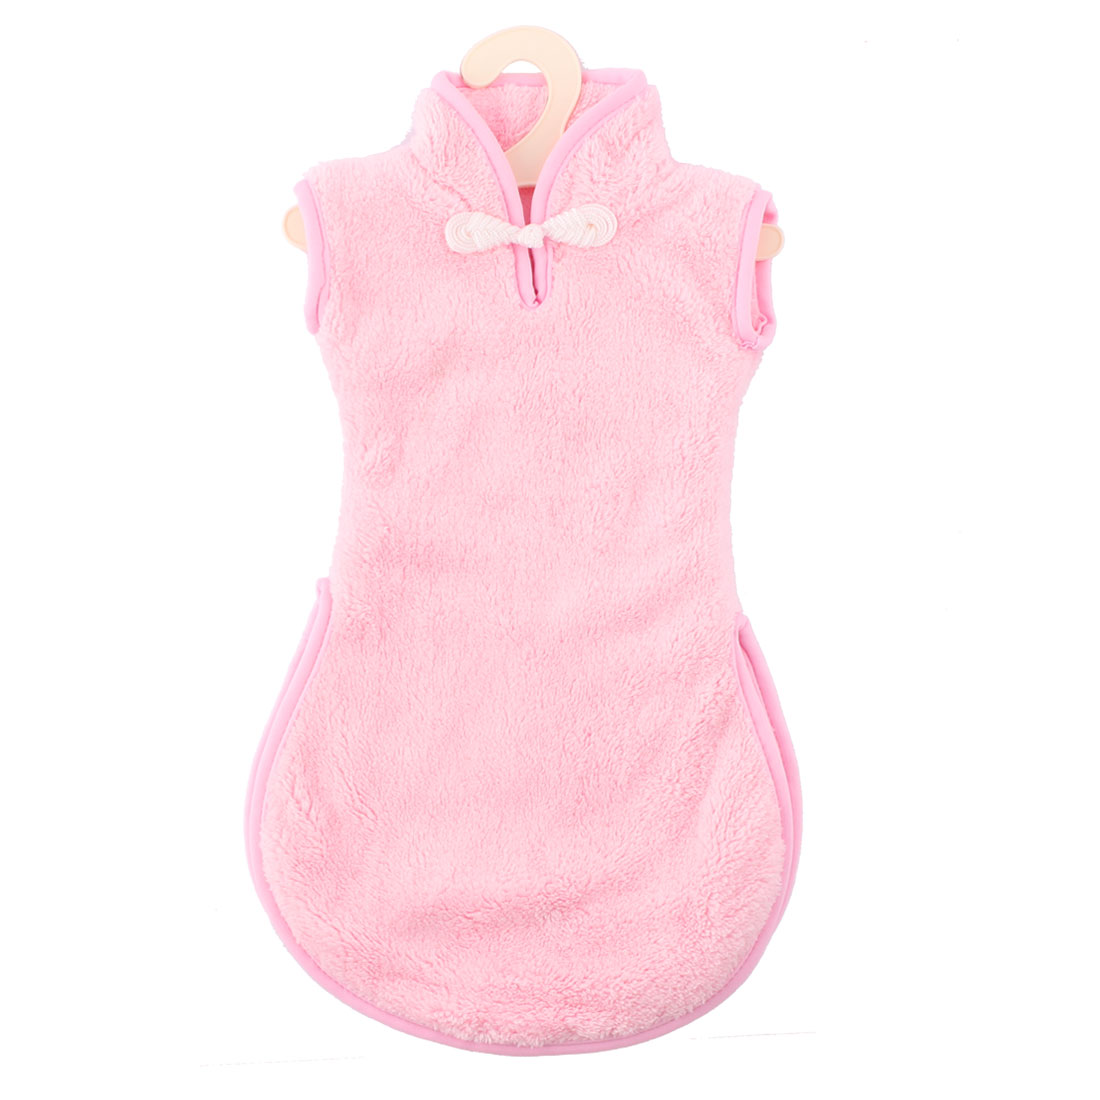 Bathroom Kitchen Wall Hanging Clothes Shape Washing Hand Drying Towel Pink